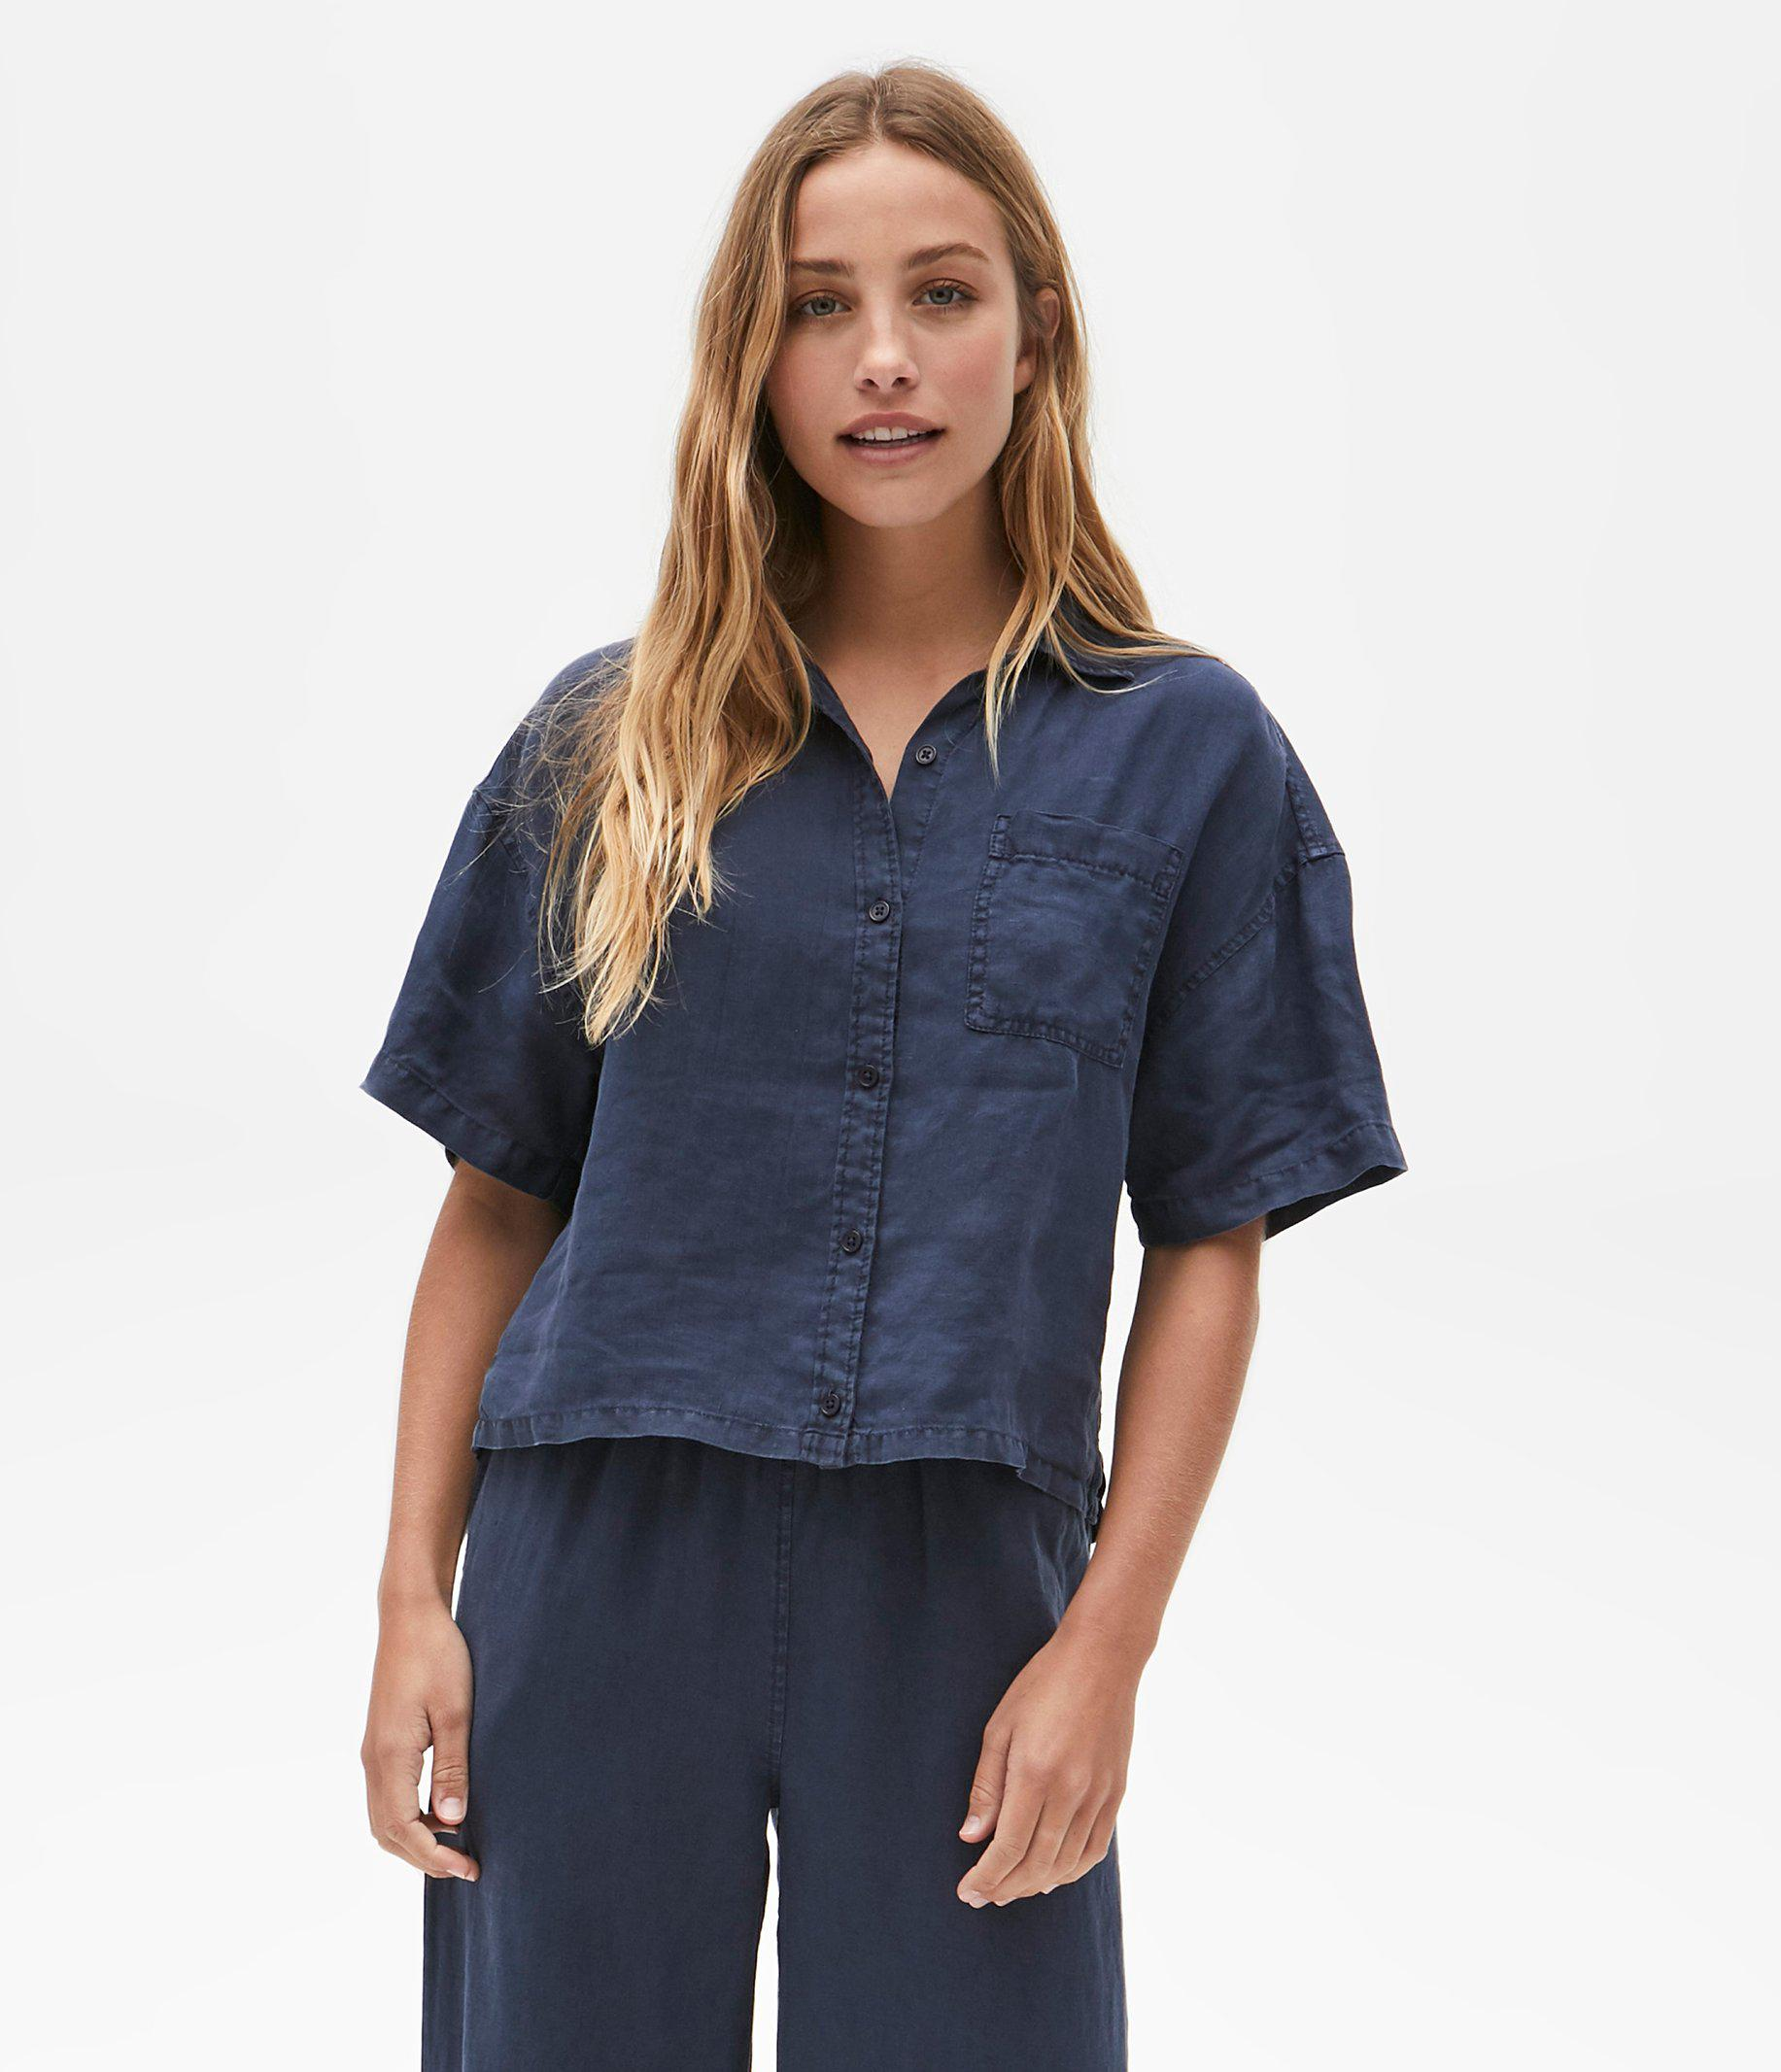 Penny Button Up Top